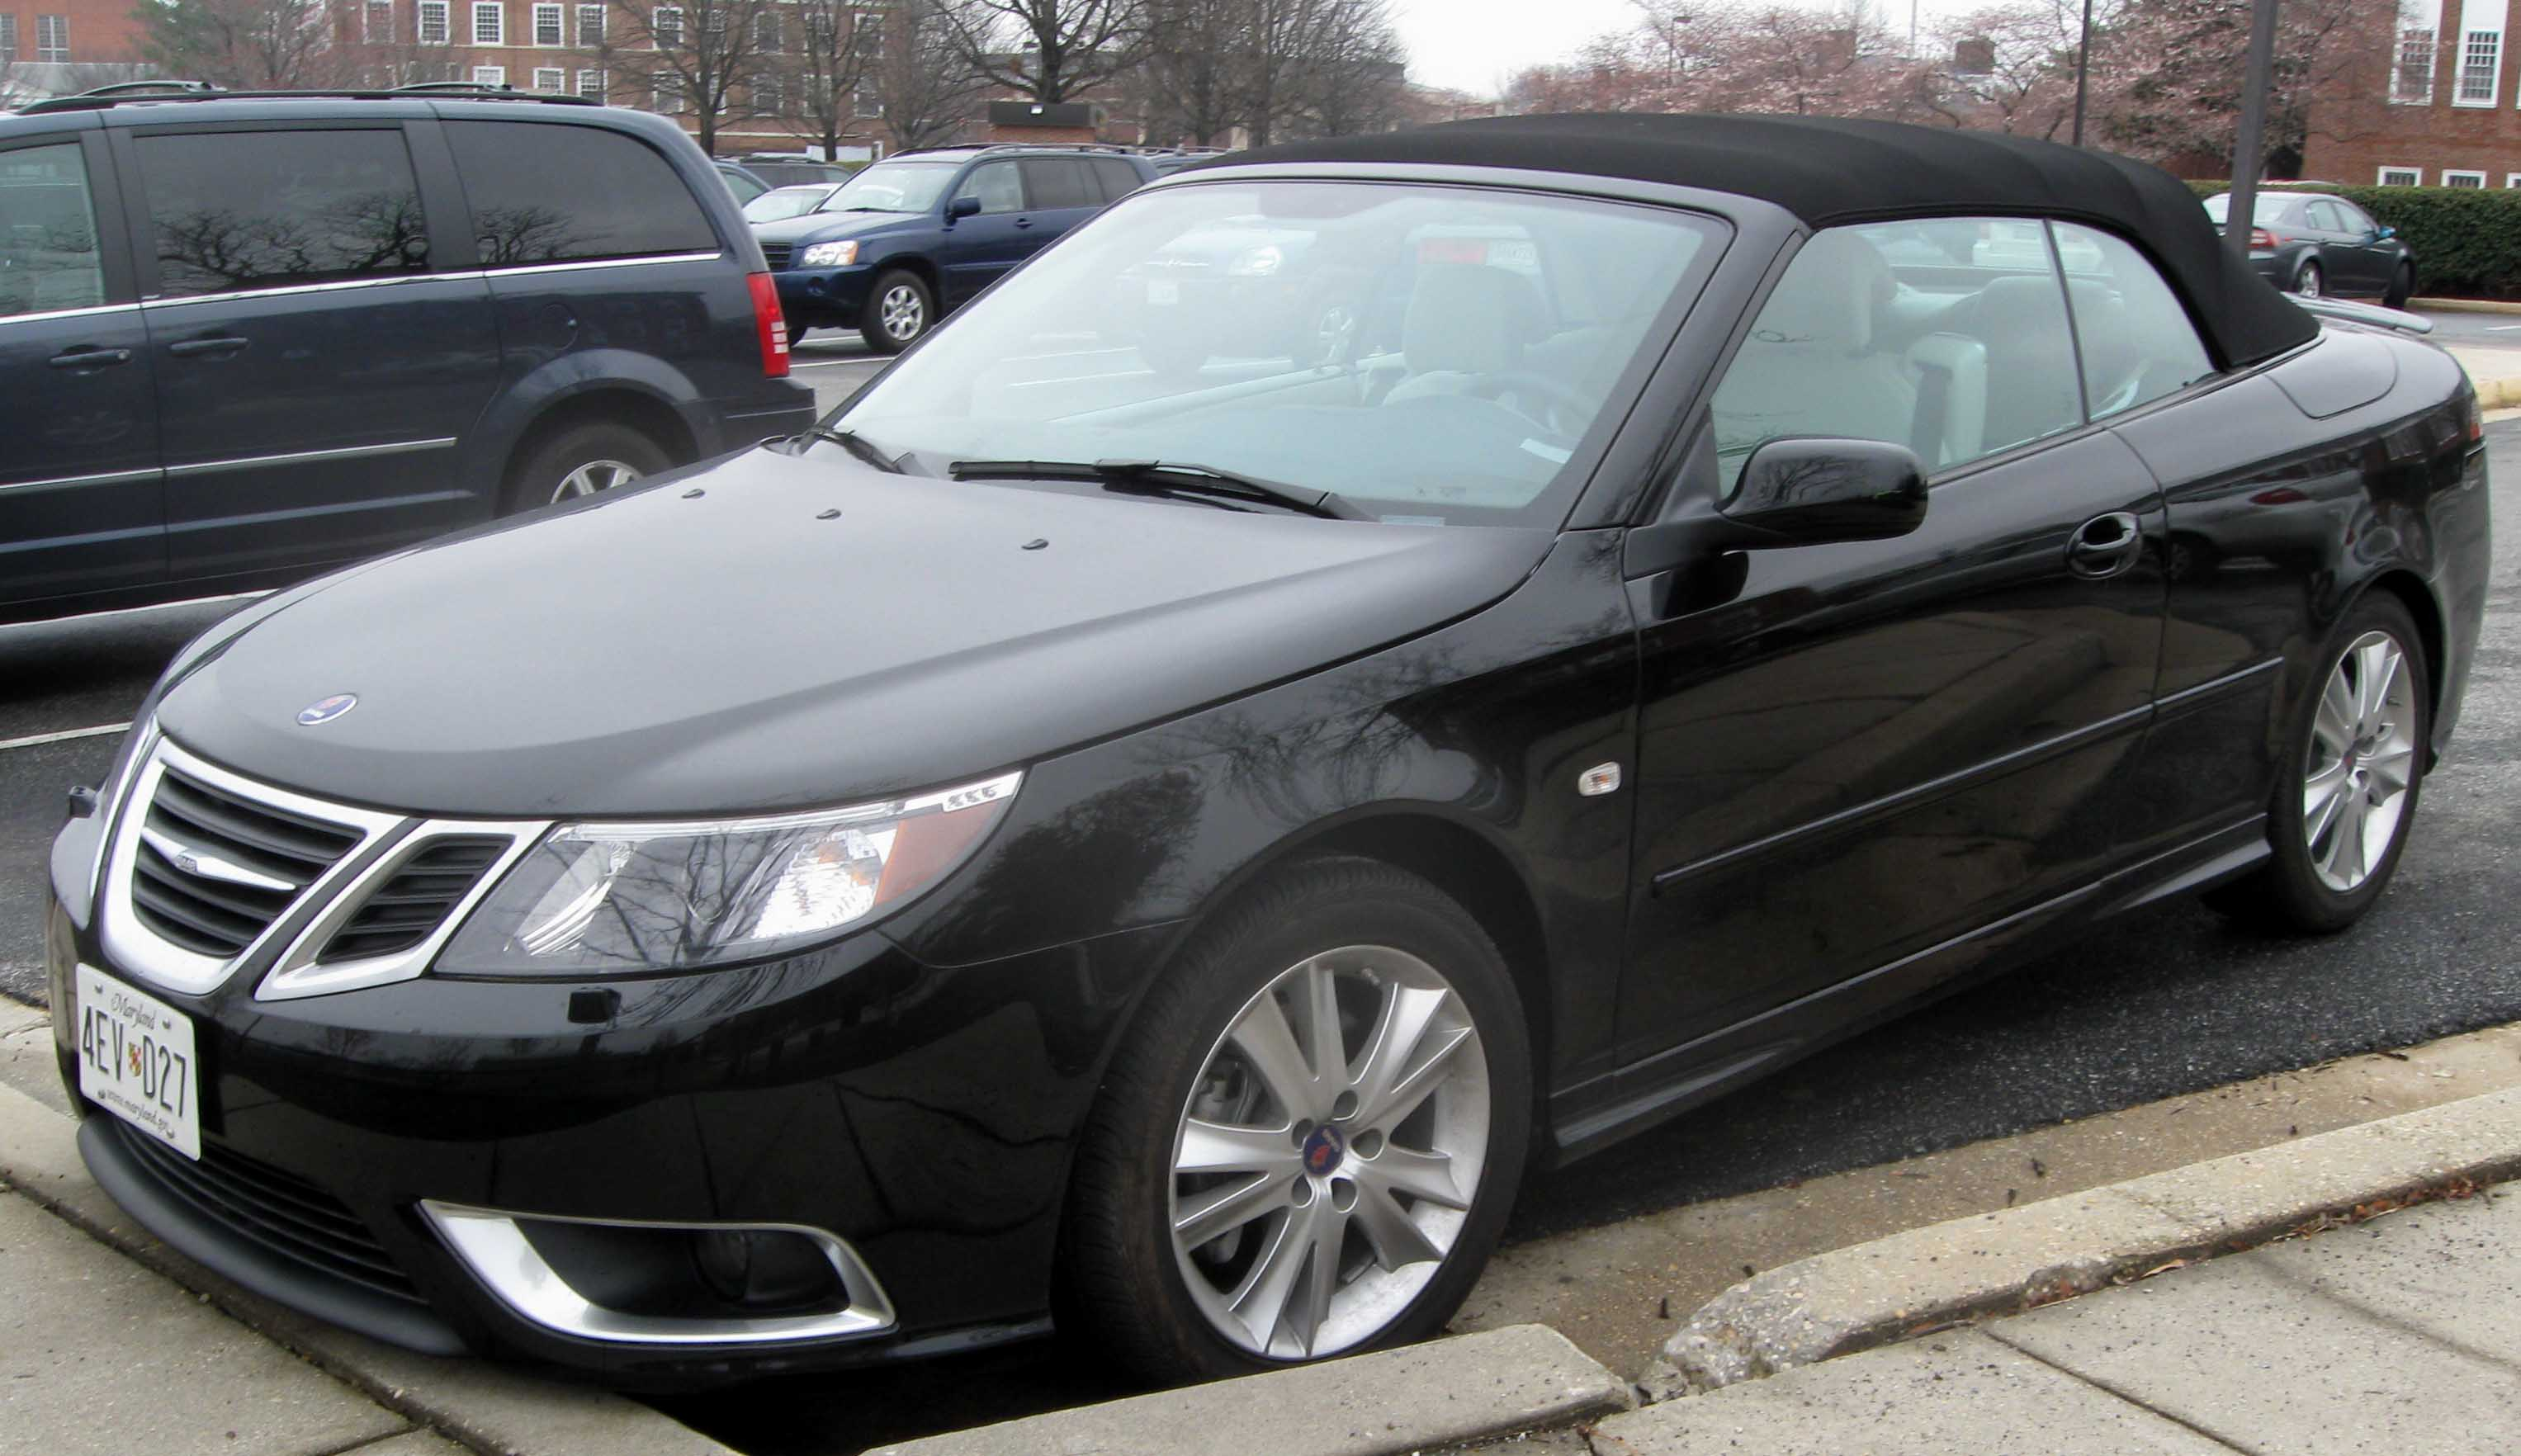 file saab 9 3 convertible jpg wikimedia commons. Black Bedroom Furniture Sets. Home Design Ideas